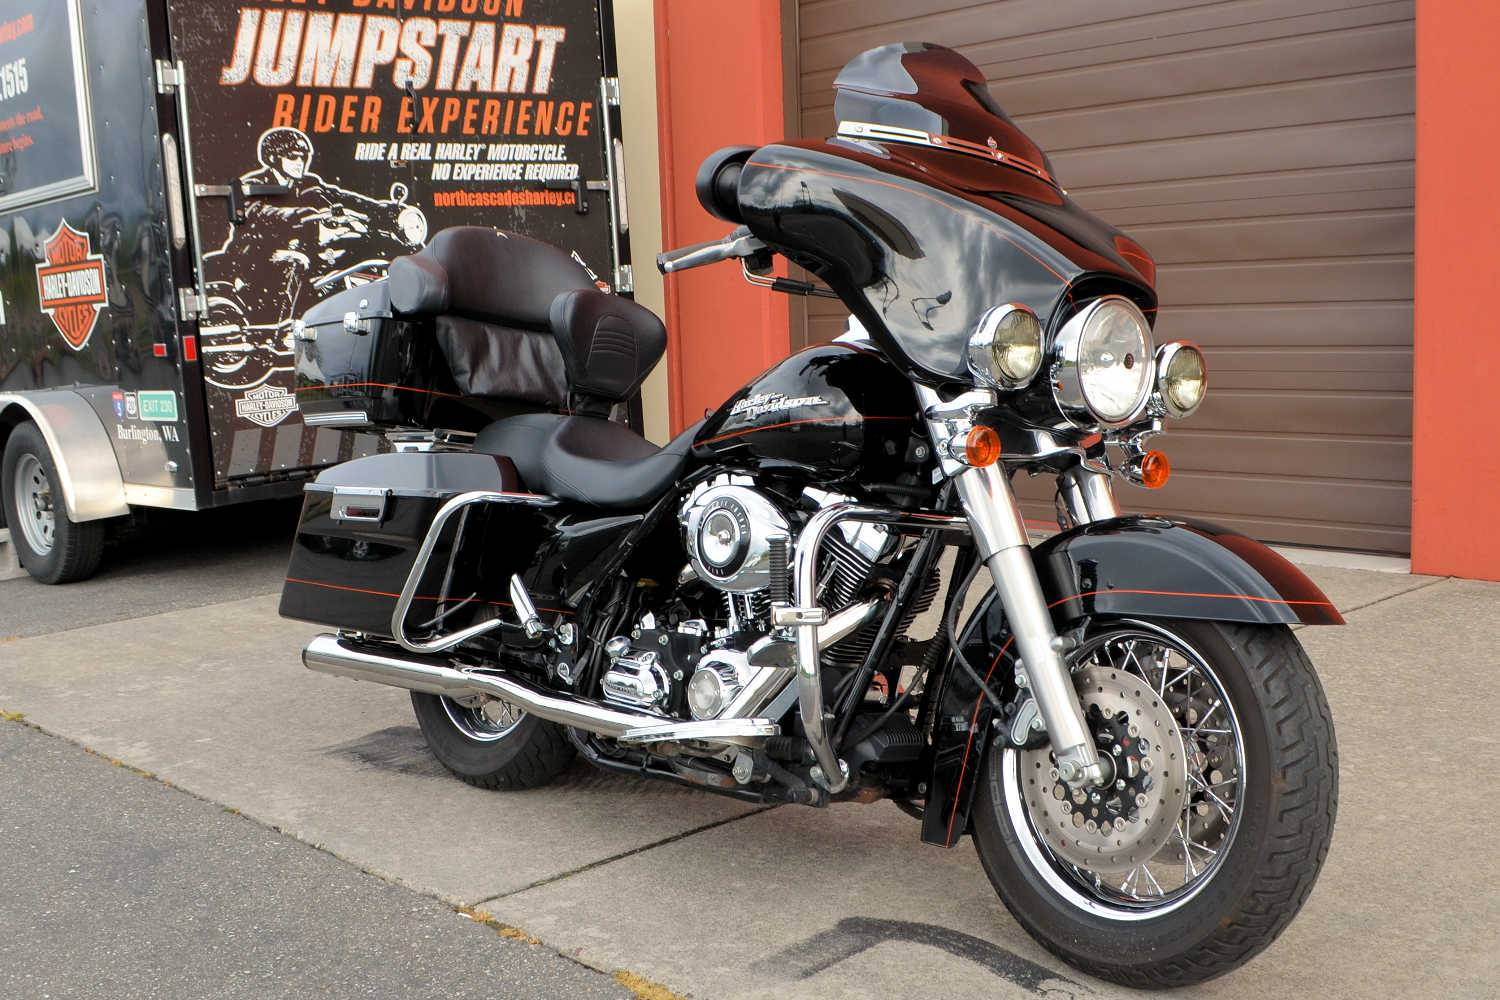 2007 Harley-Davidson Street Glide™ in Burlington, Washington - Photo 4